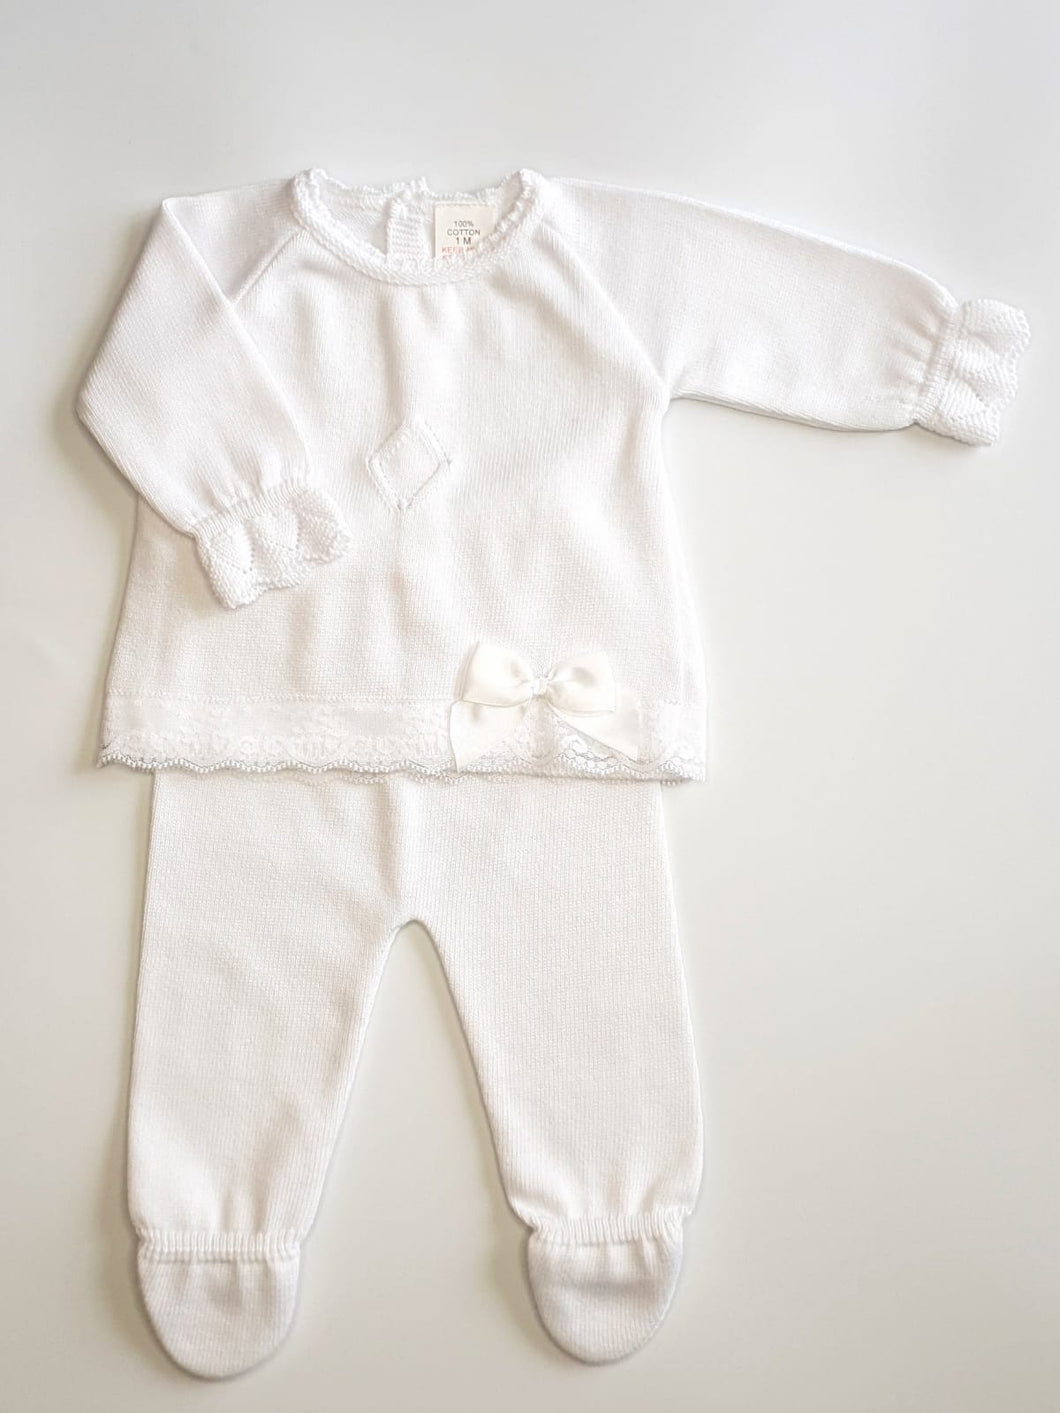 White Knit Unisex 2 Piece Outfit With Lace Trim